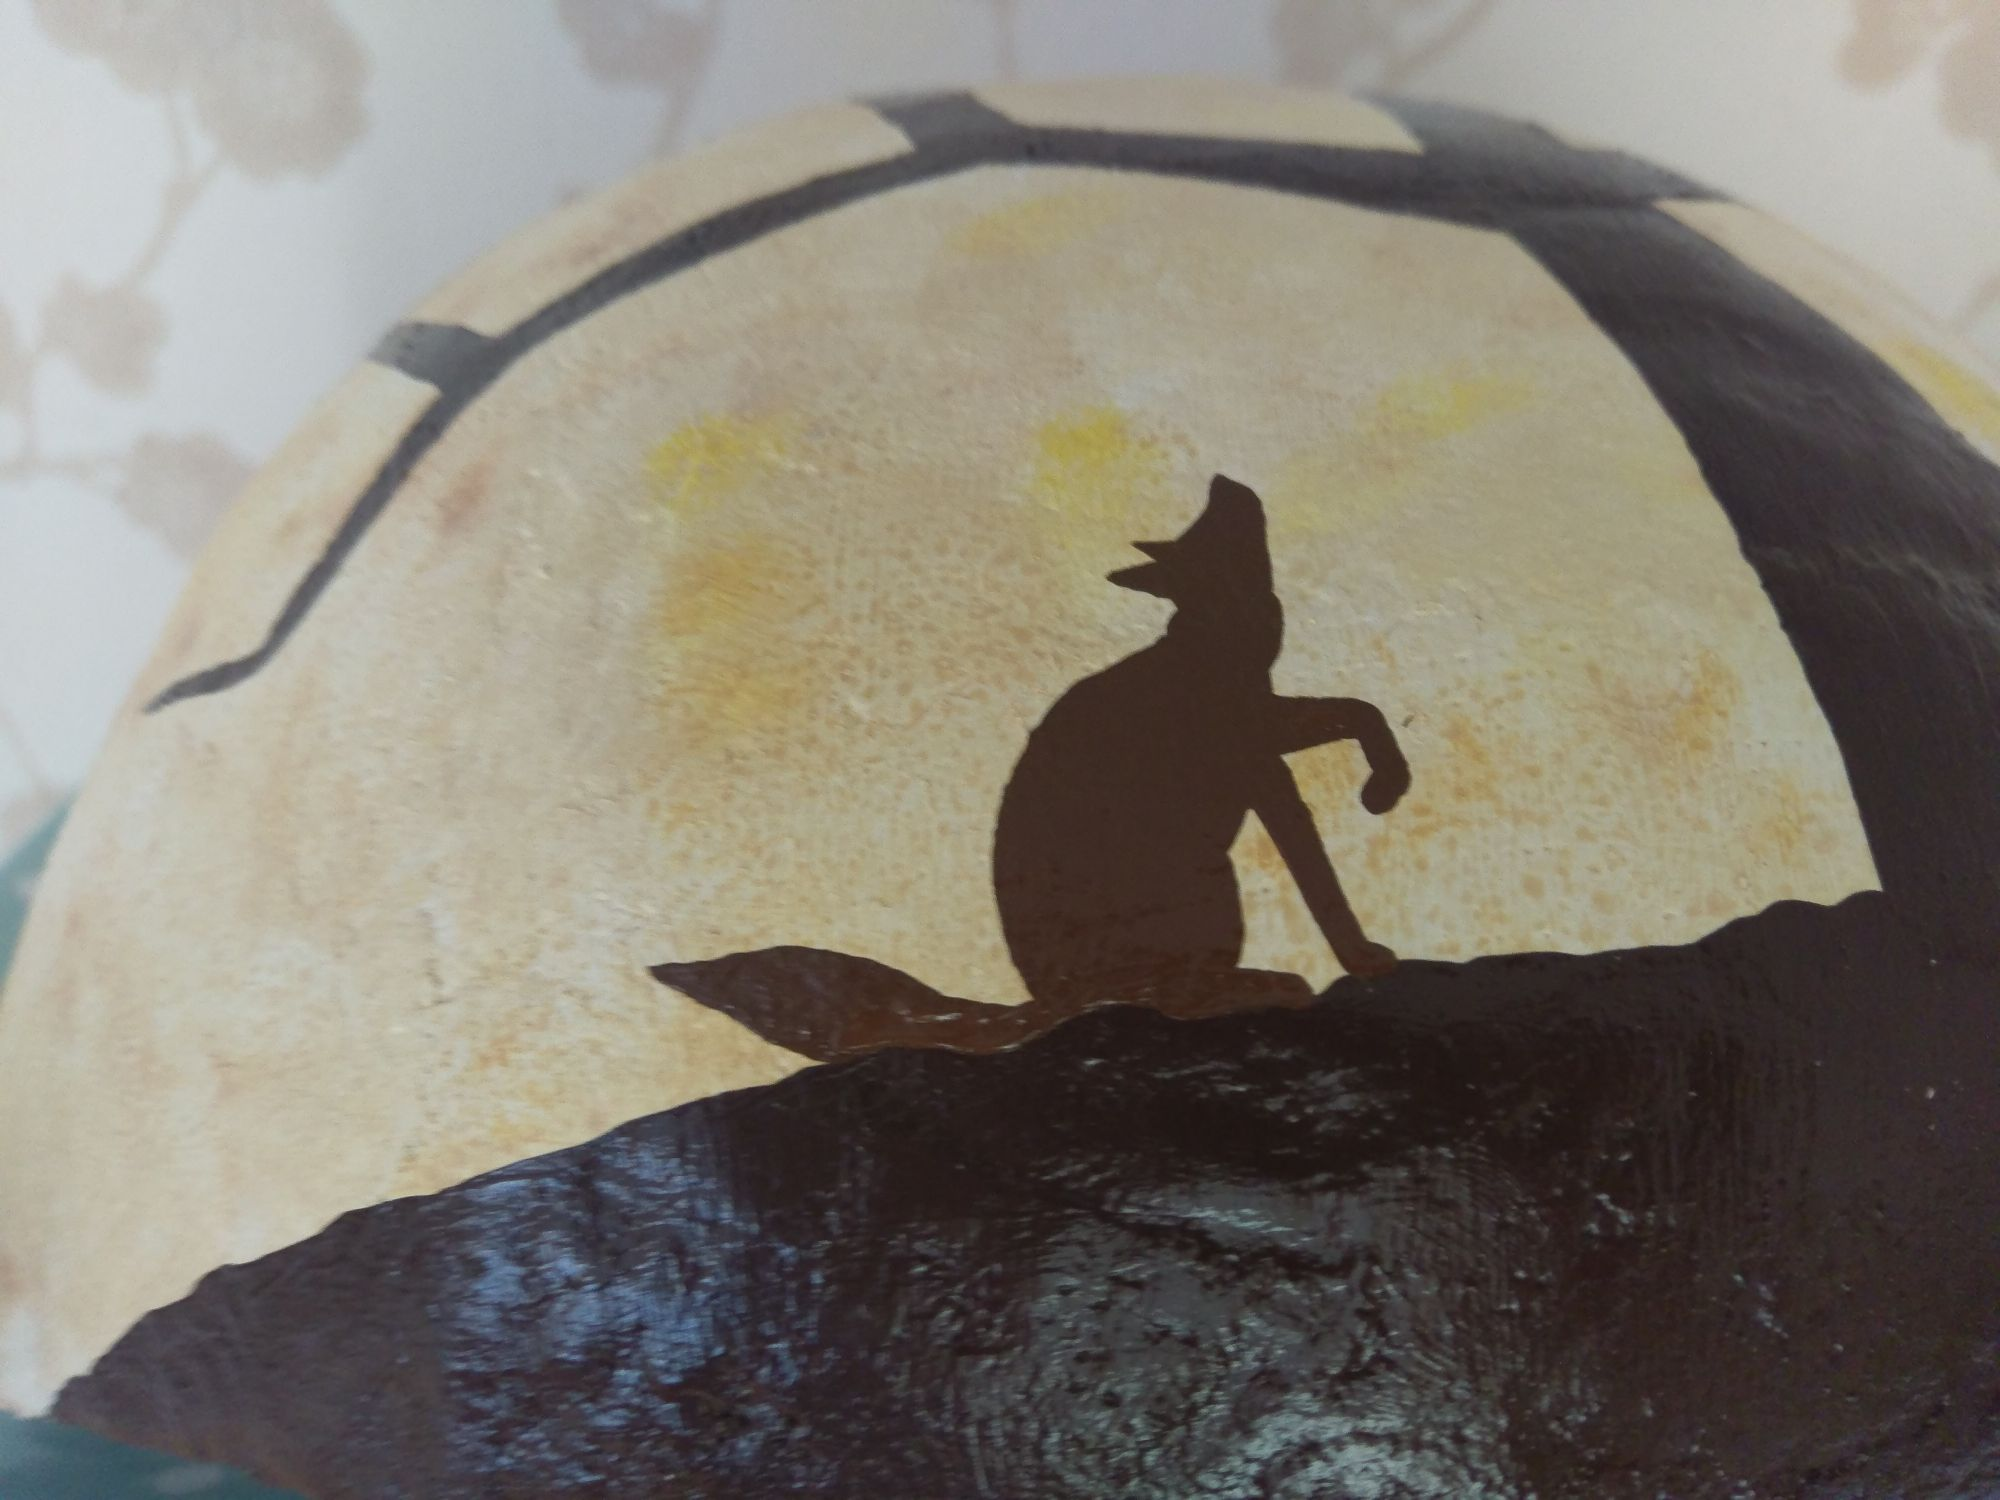 A close up of a fox silhouette painted on a bellycast.